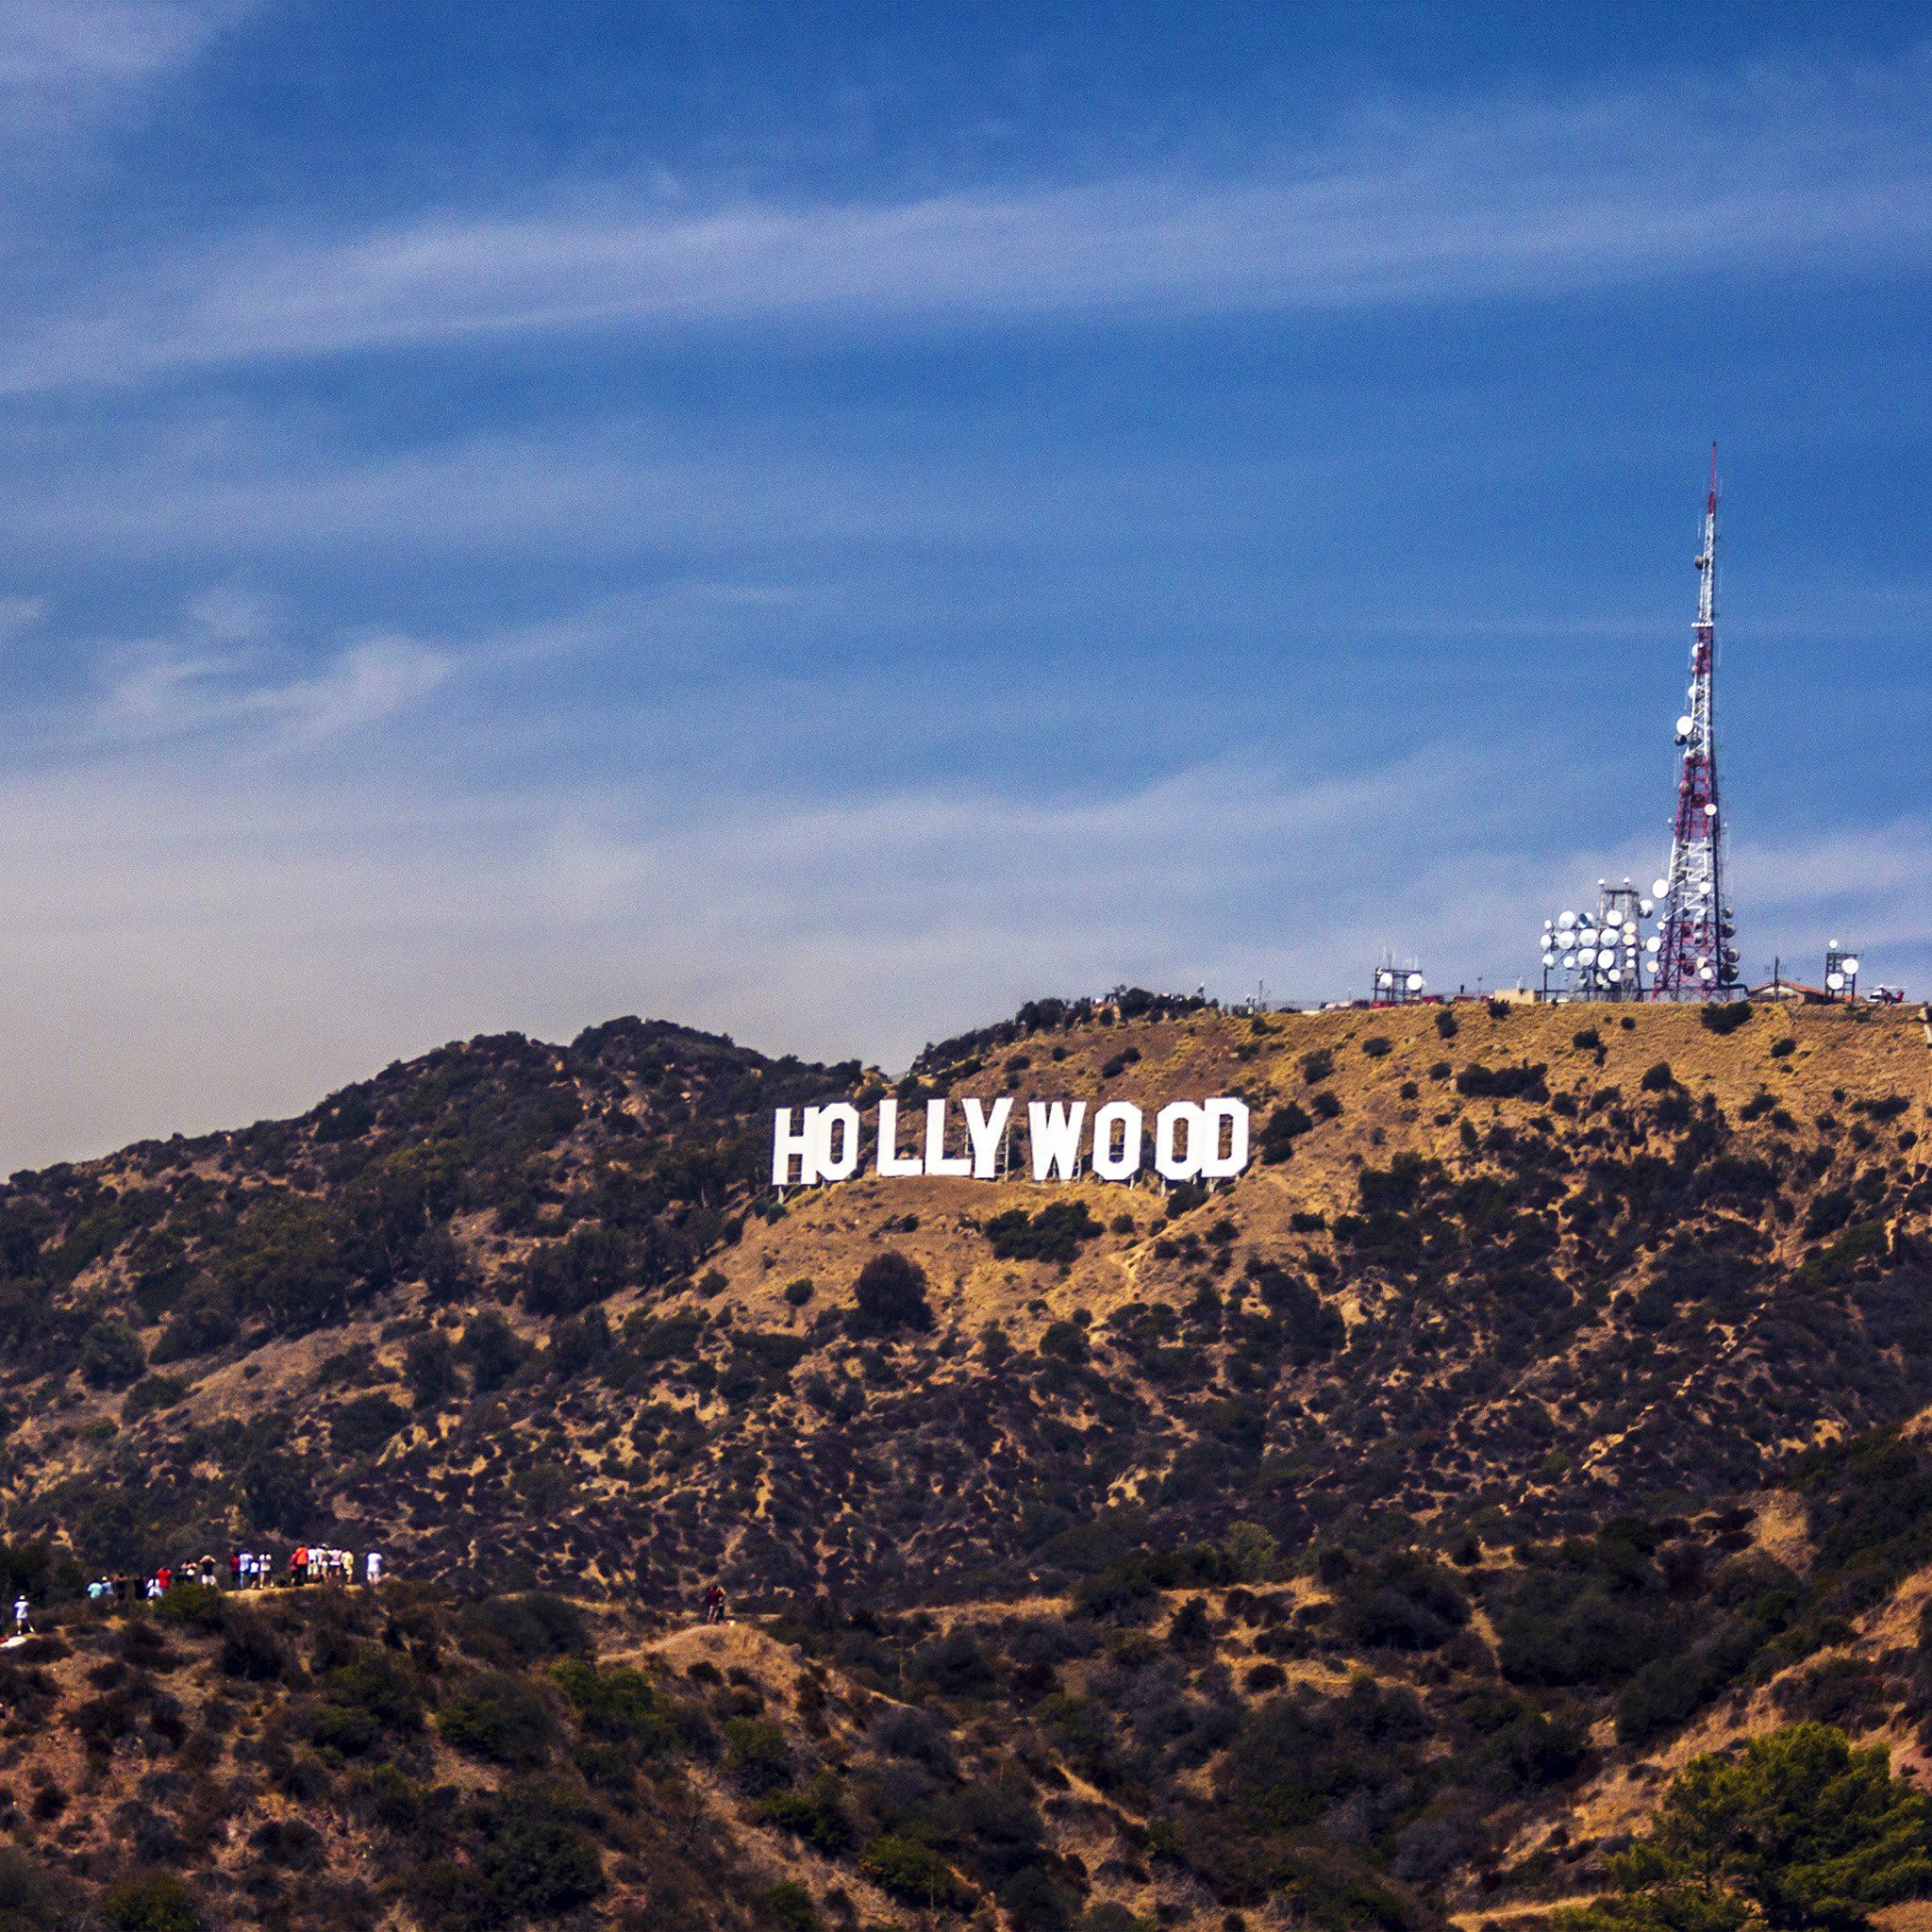 Hollywood Sign La America Sky Mountain Ipad Air Wallpapers Free Download